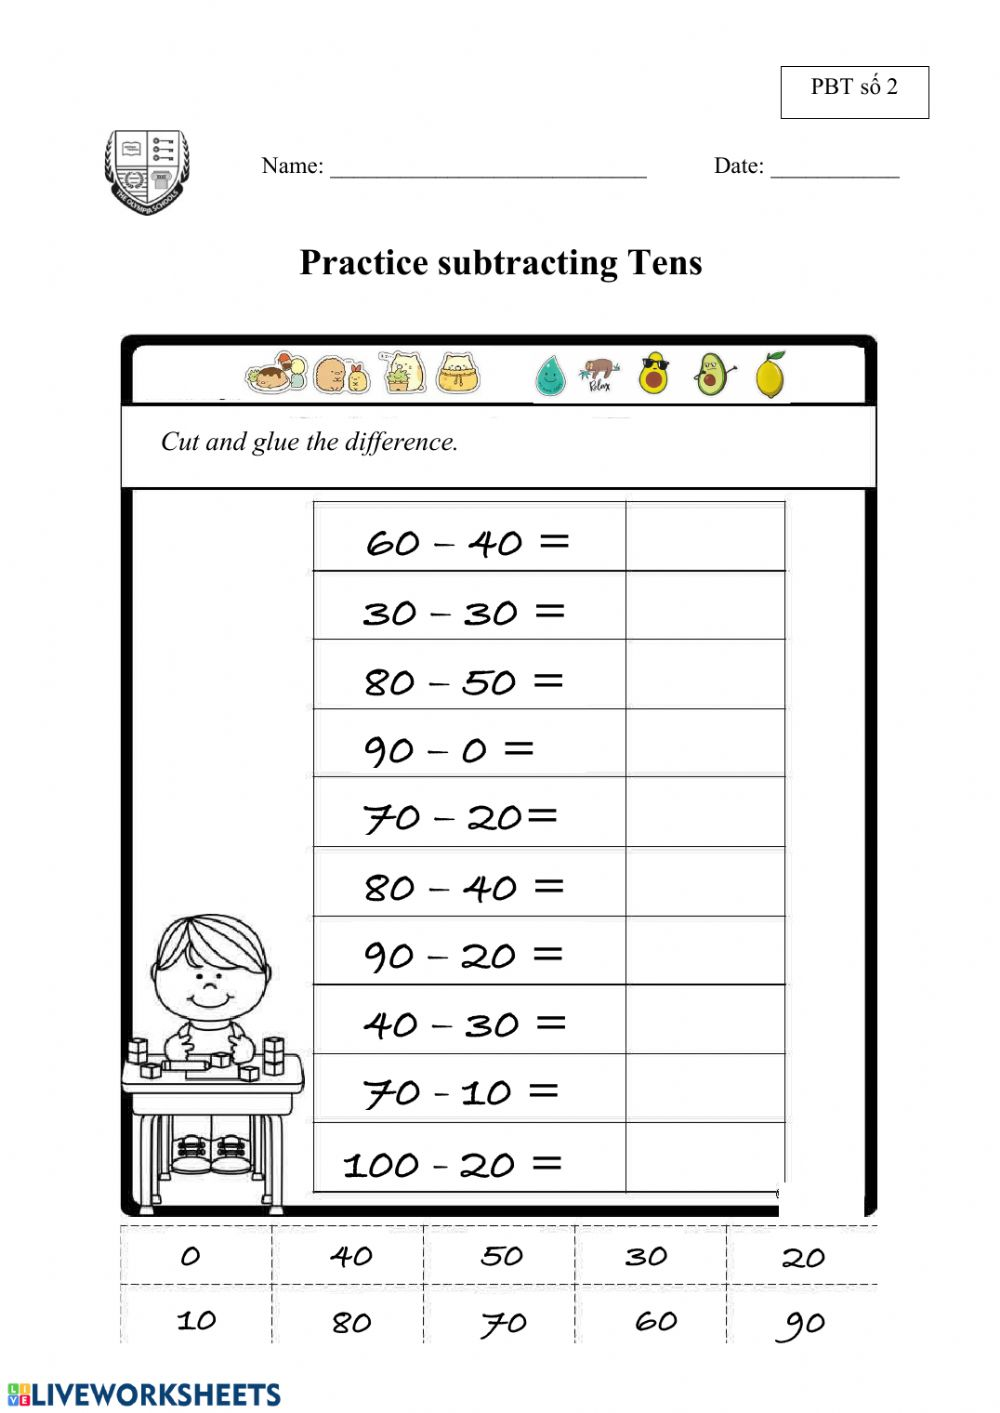 medium resolution of Subtracting Tens (PBT số 2) worksheet